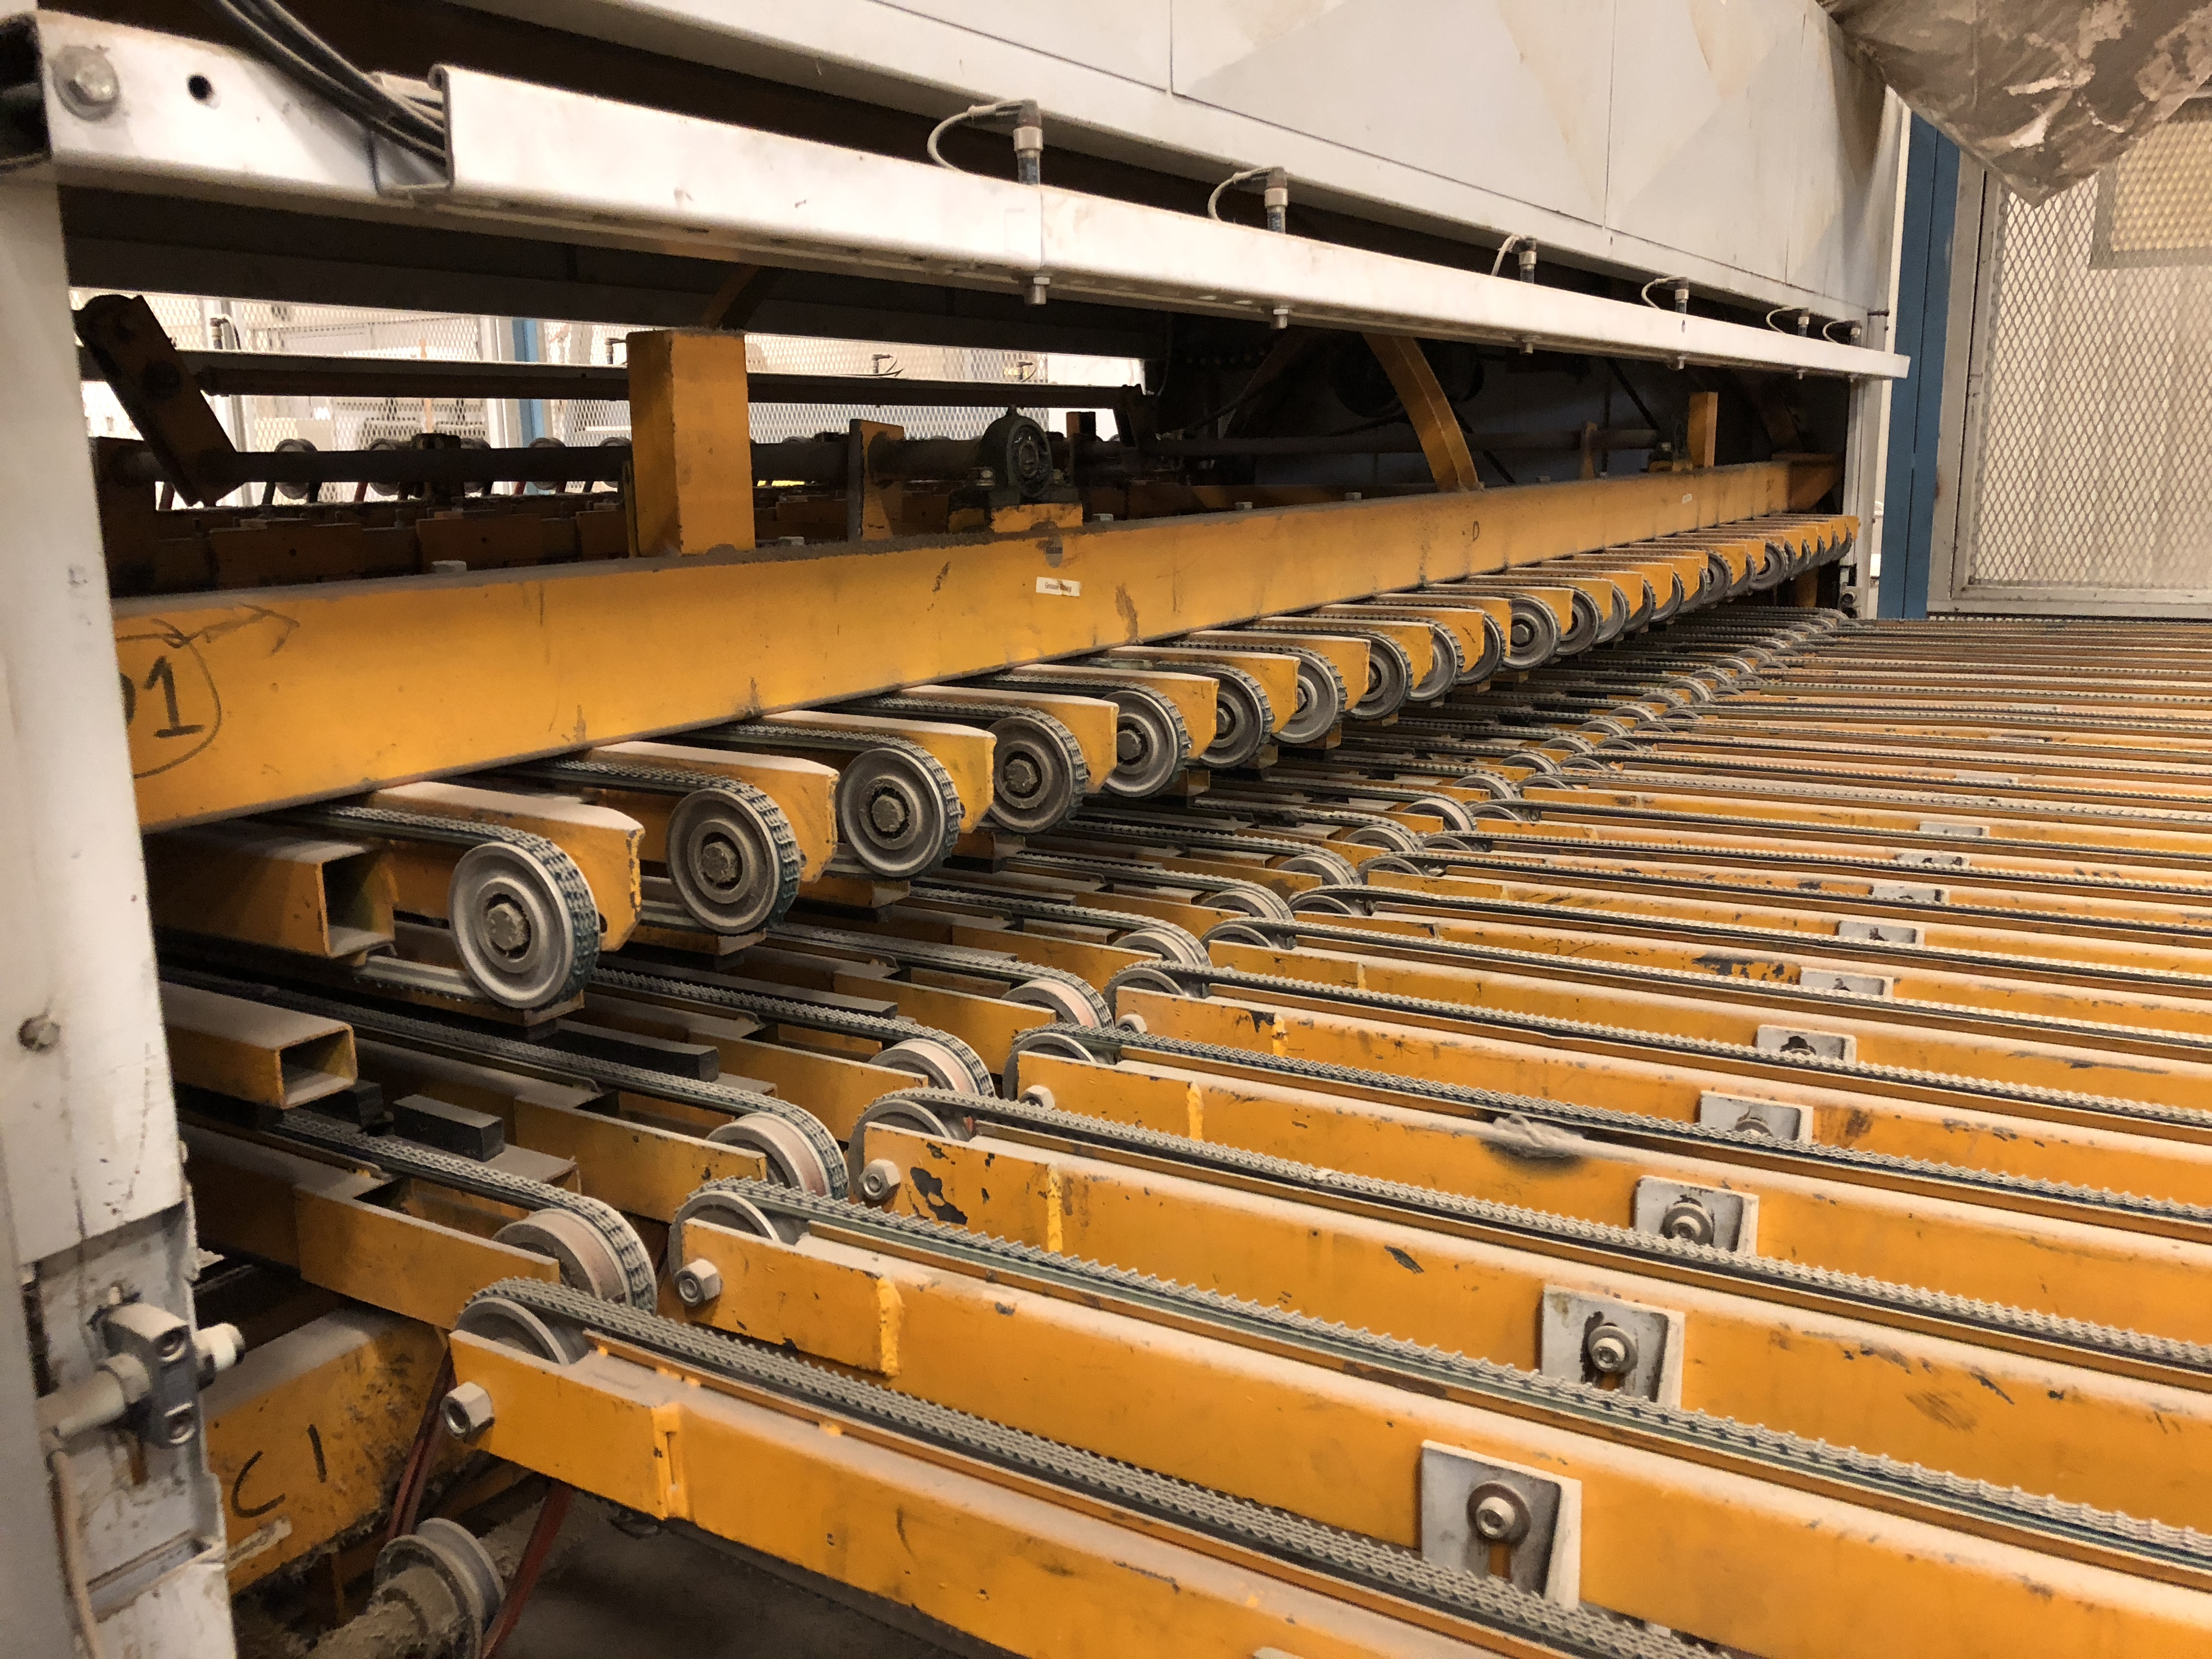 CEFLA PANEL FLIPPER (WITH INFEED AND OUTFEED BELT CONVEYORS) - Image 8 of 11